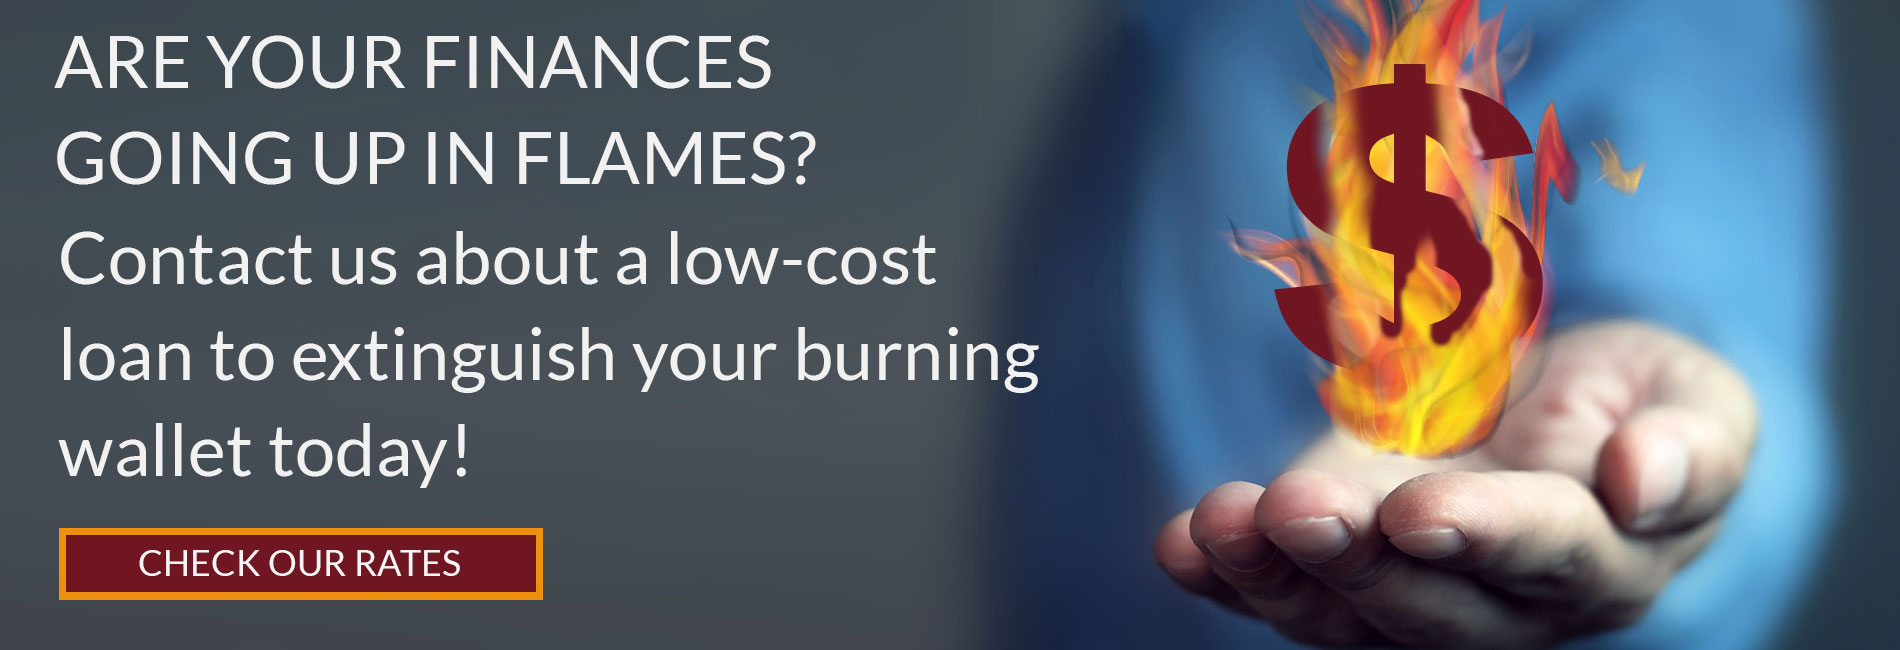 Are you finances going up in flames? Contact us about a low-cost loan to extinguish your burning wallet today! Check our rates.